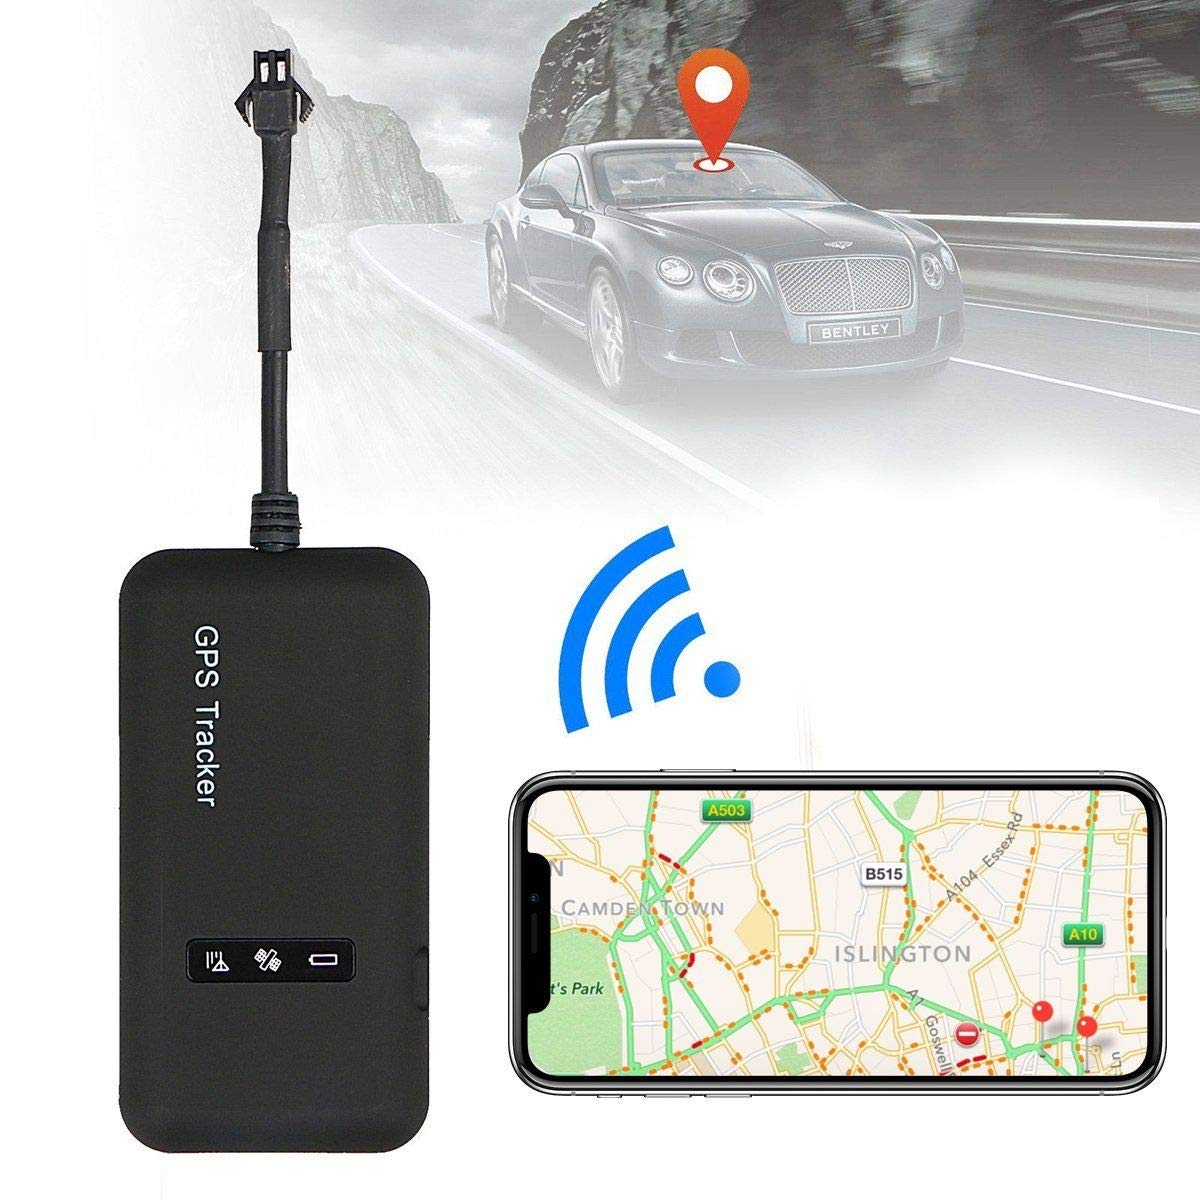 Likorlove Vehicle Car Gps Tracker Tracking Device Mini Gsm Gprs Sms Land Rover 90 Fuse Box Locator Global Real Time For Auto Motorcycle Bycicle Scooter 25 46